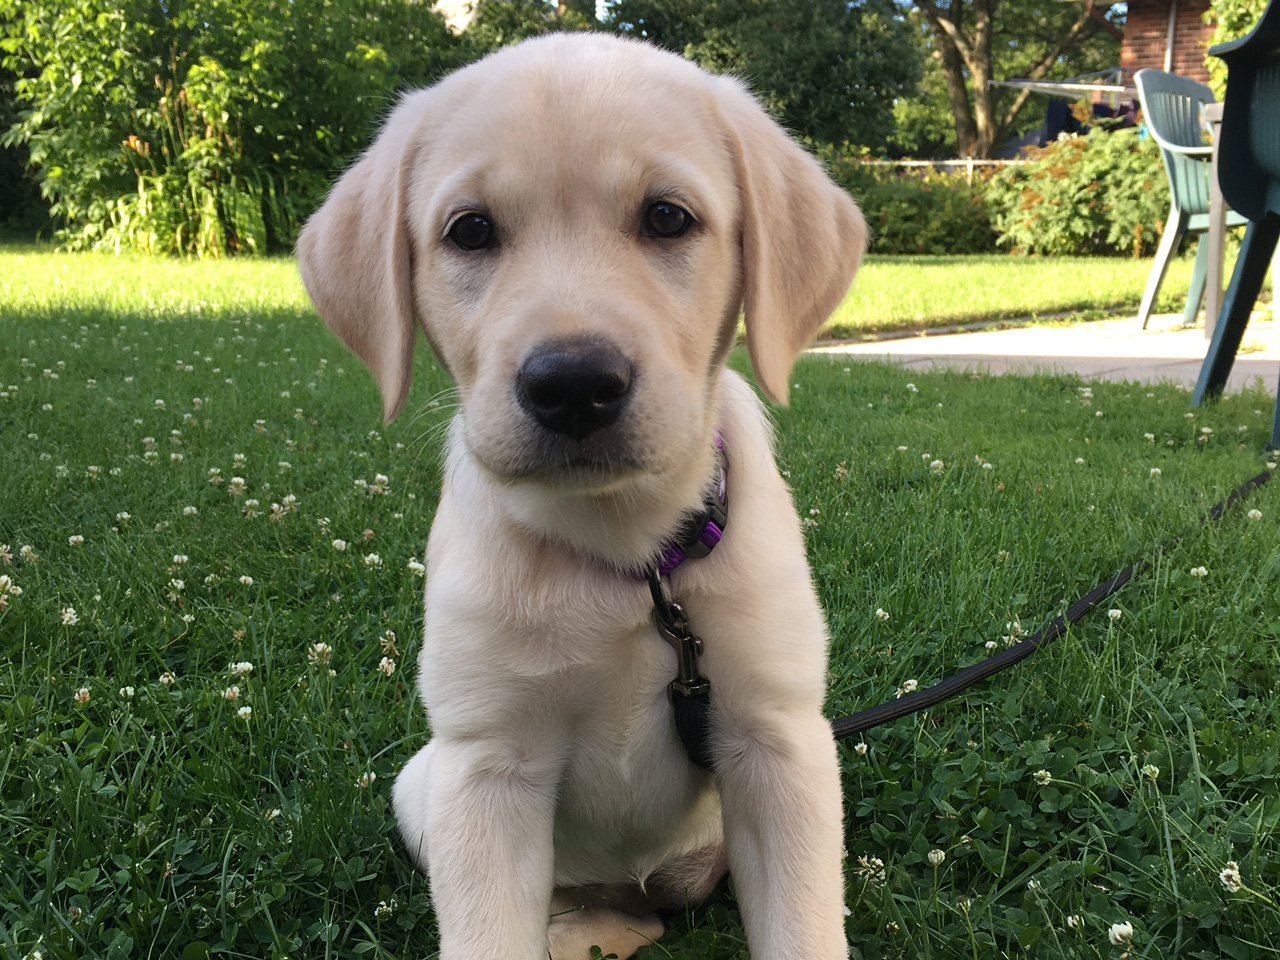 Golden lab puppy sitting on the lawn